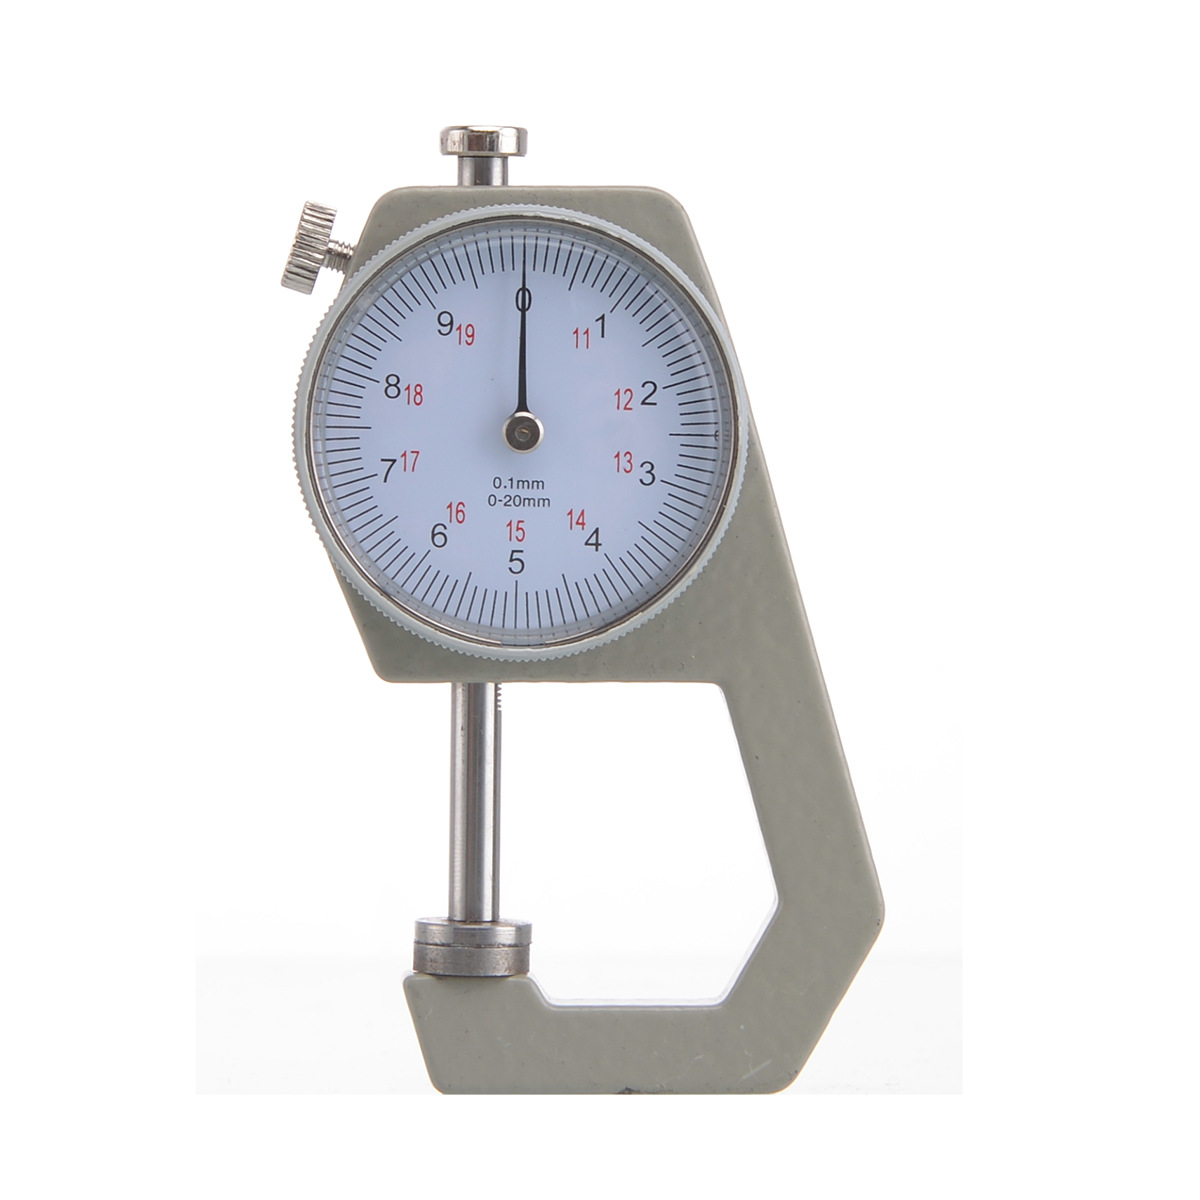 Meizen Measuring Tool Thickness Gauge to measure the thickness of pearl steel pipe, wood and leather